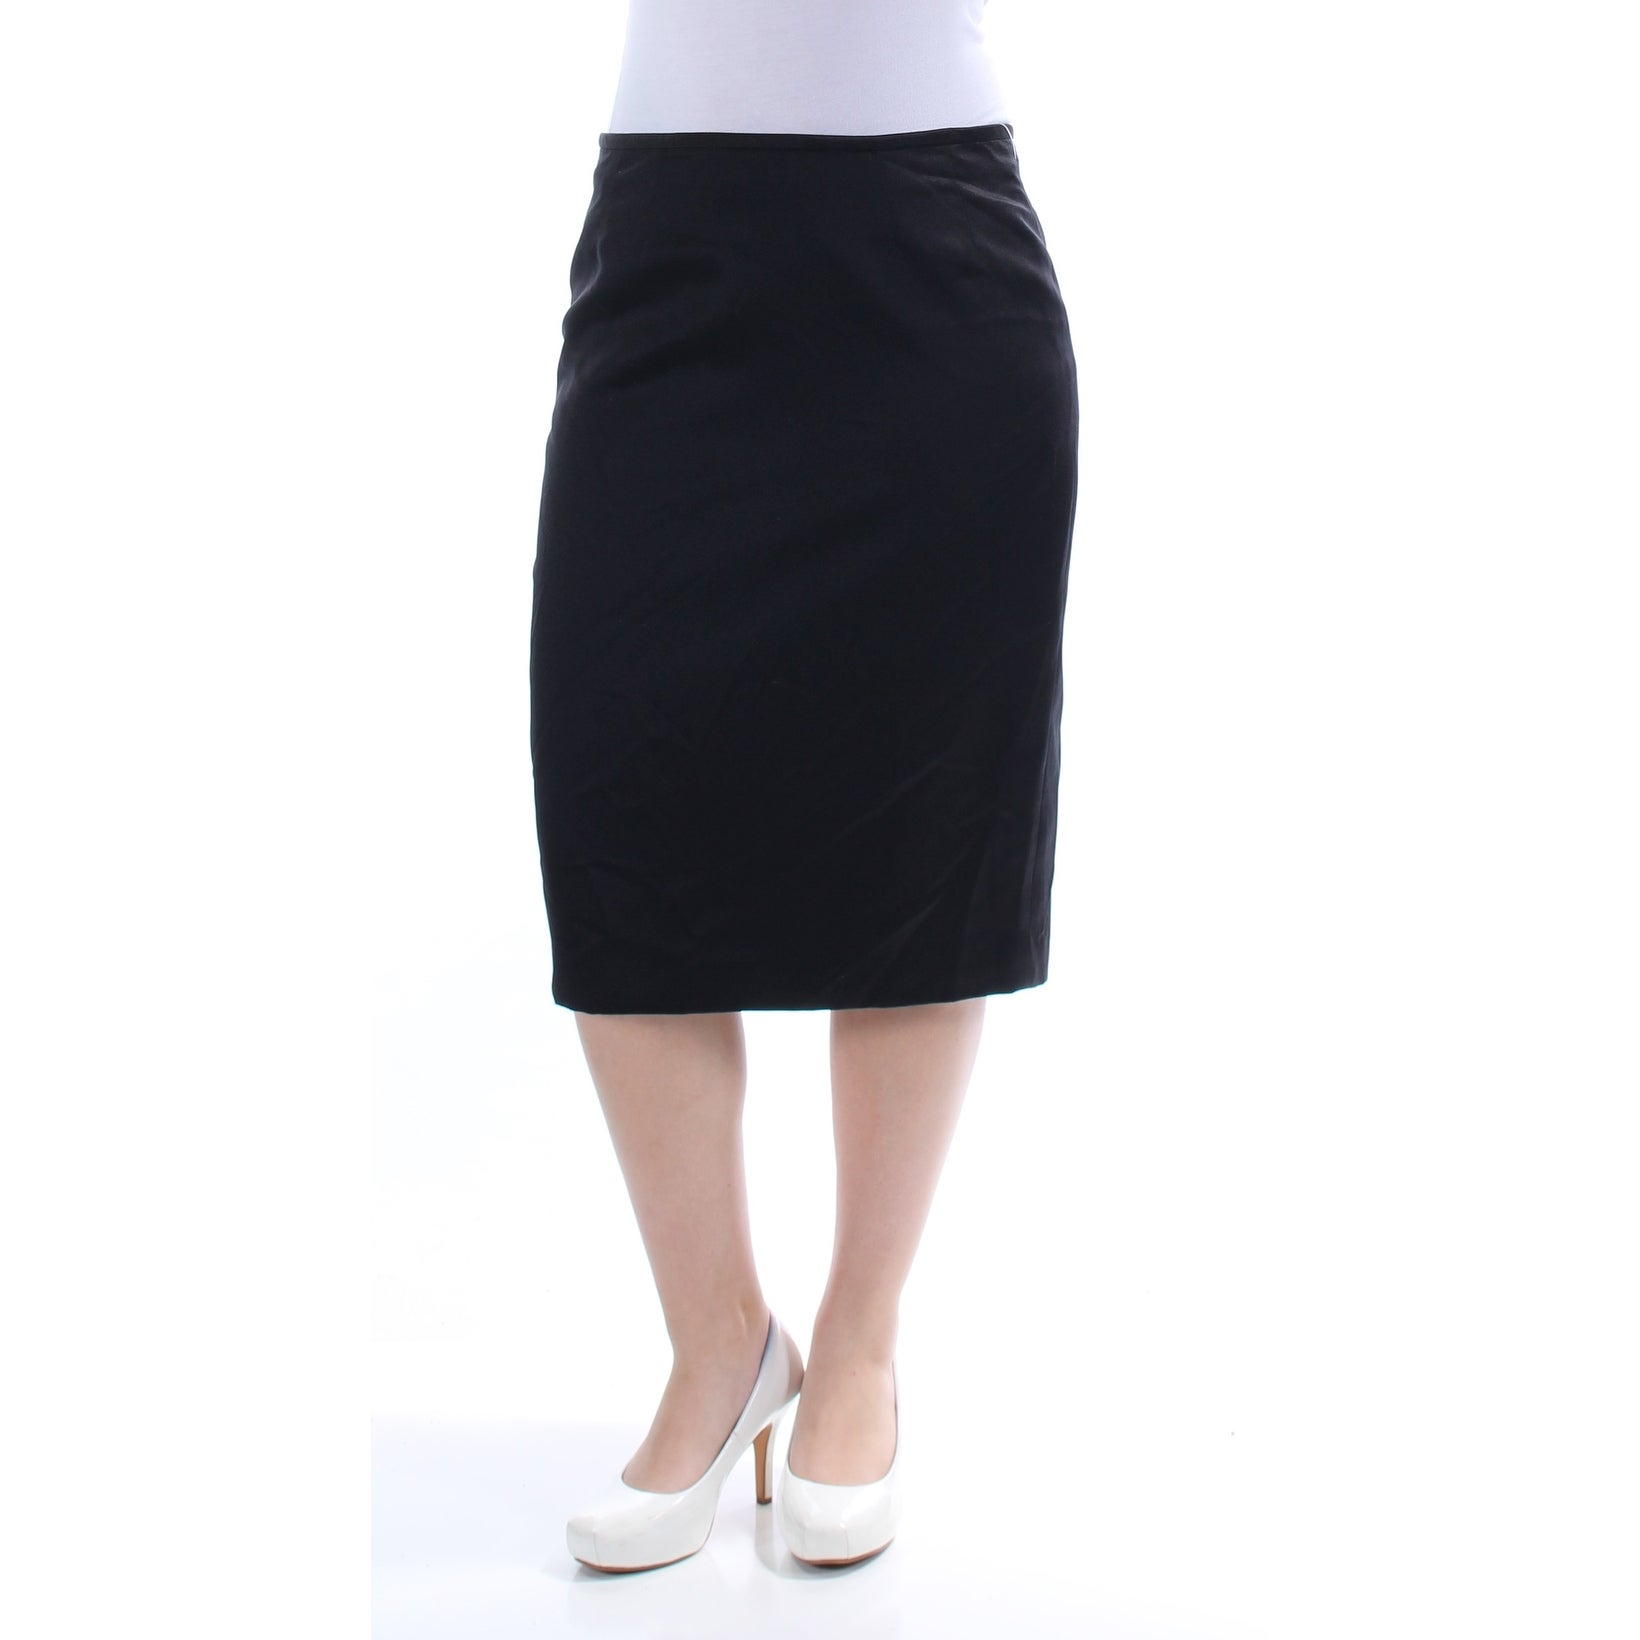 Women's Clothing Ice Brand Tube Skirt Sz 6 Xs Clothing, Shoes & Accessories